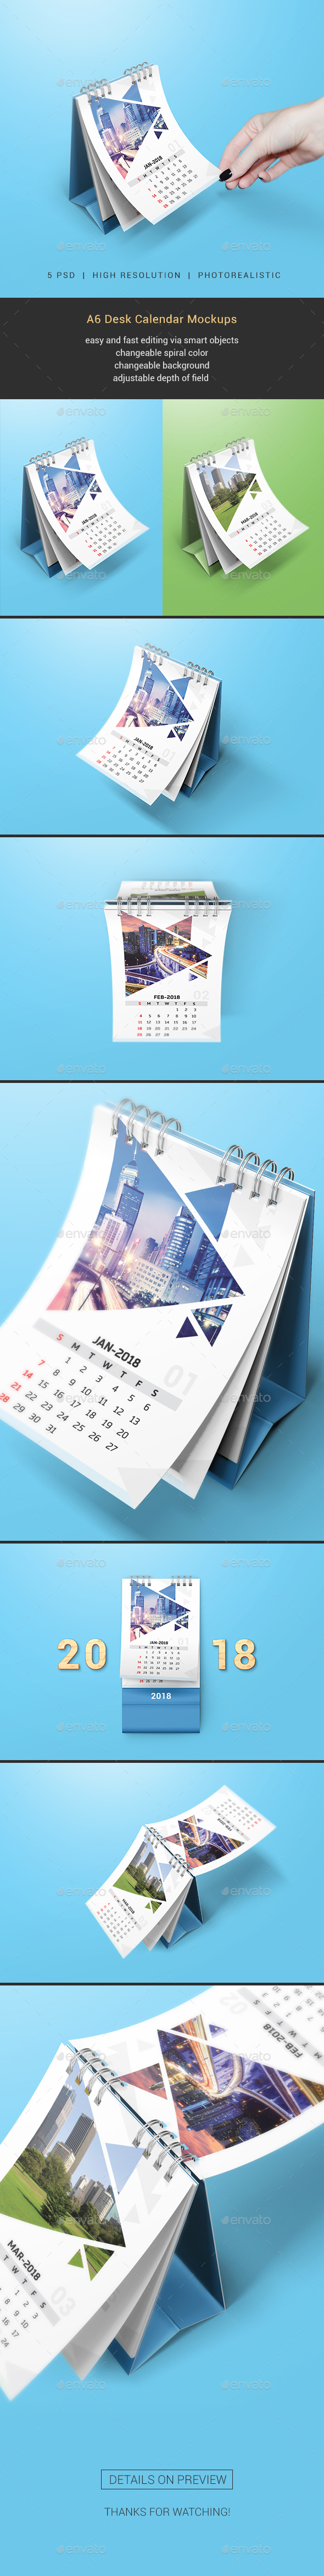 GraphicRiver Desk Calendar Mockups 20516927